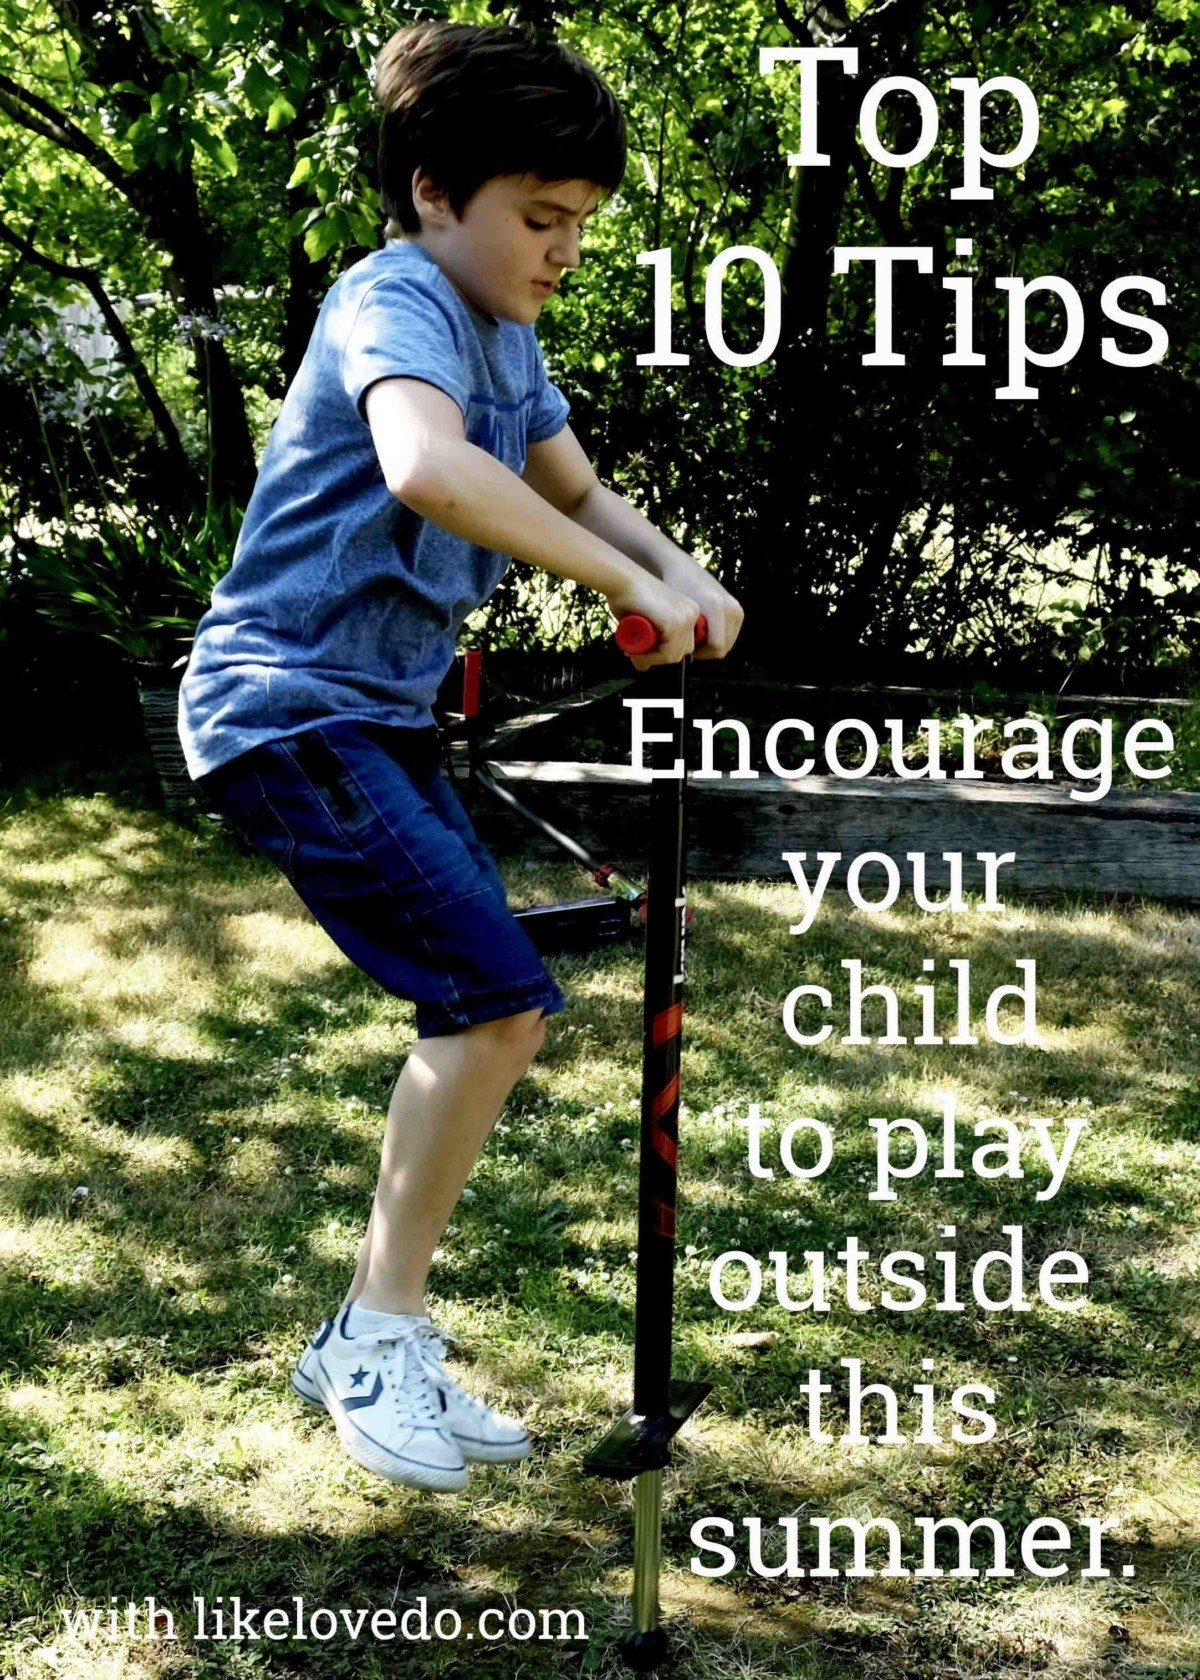 Top 10 Tips to encourage your child to play outside this summer.